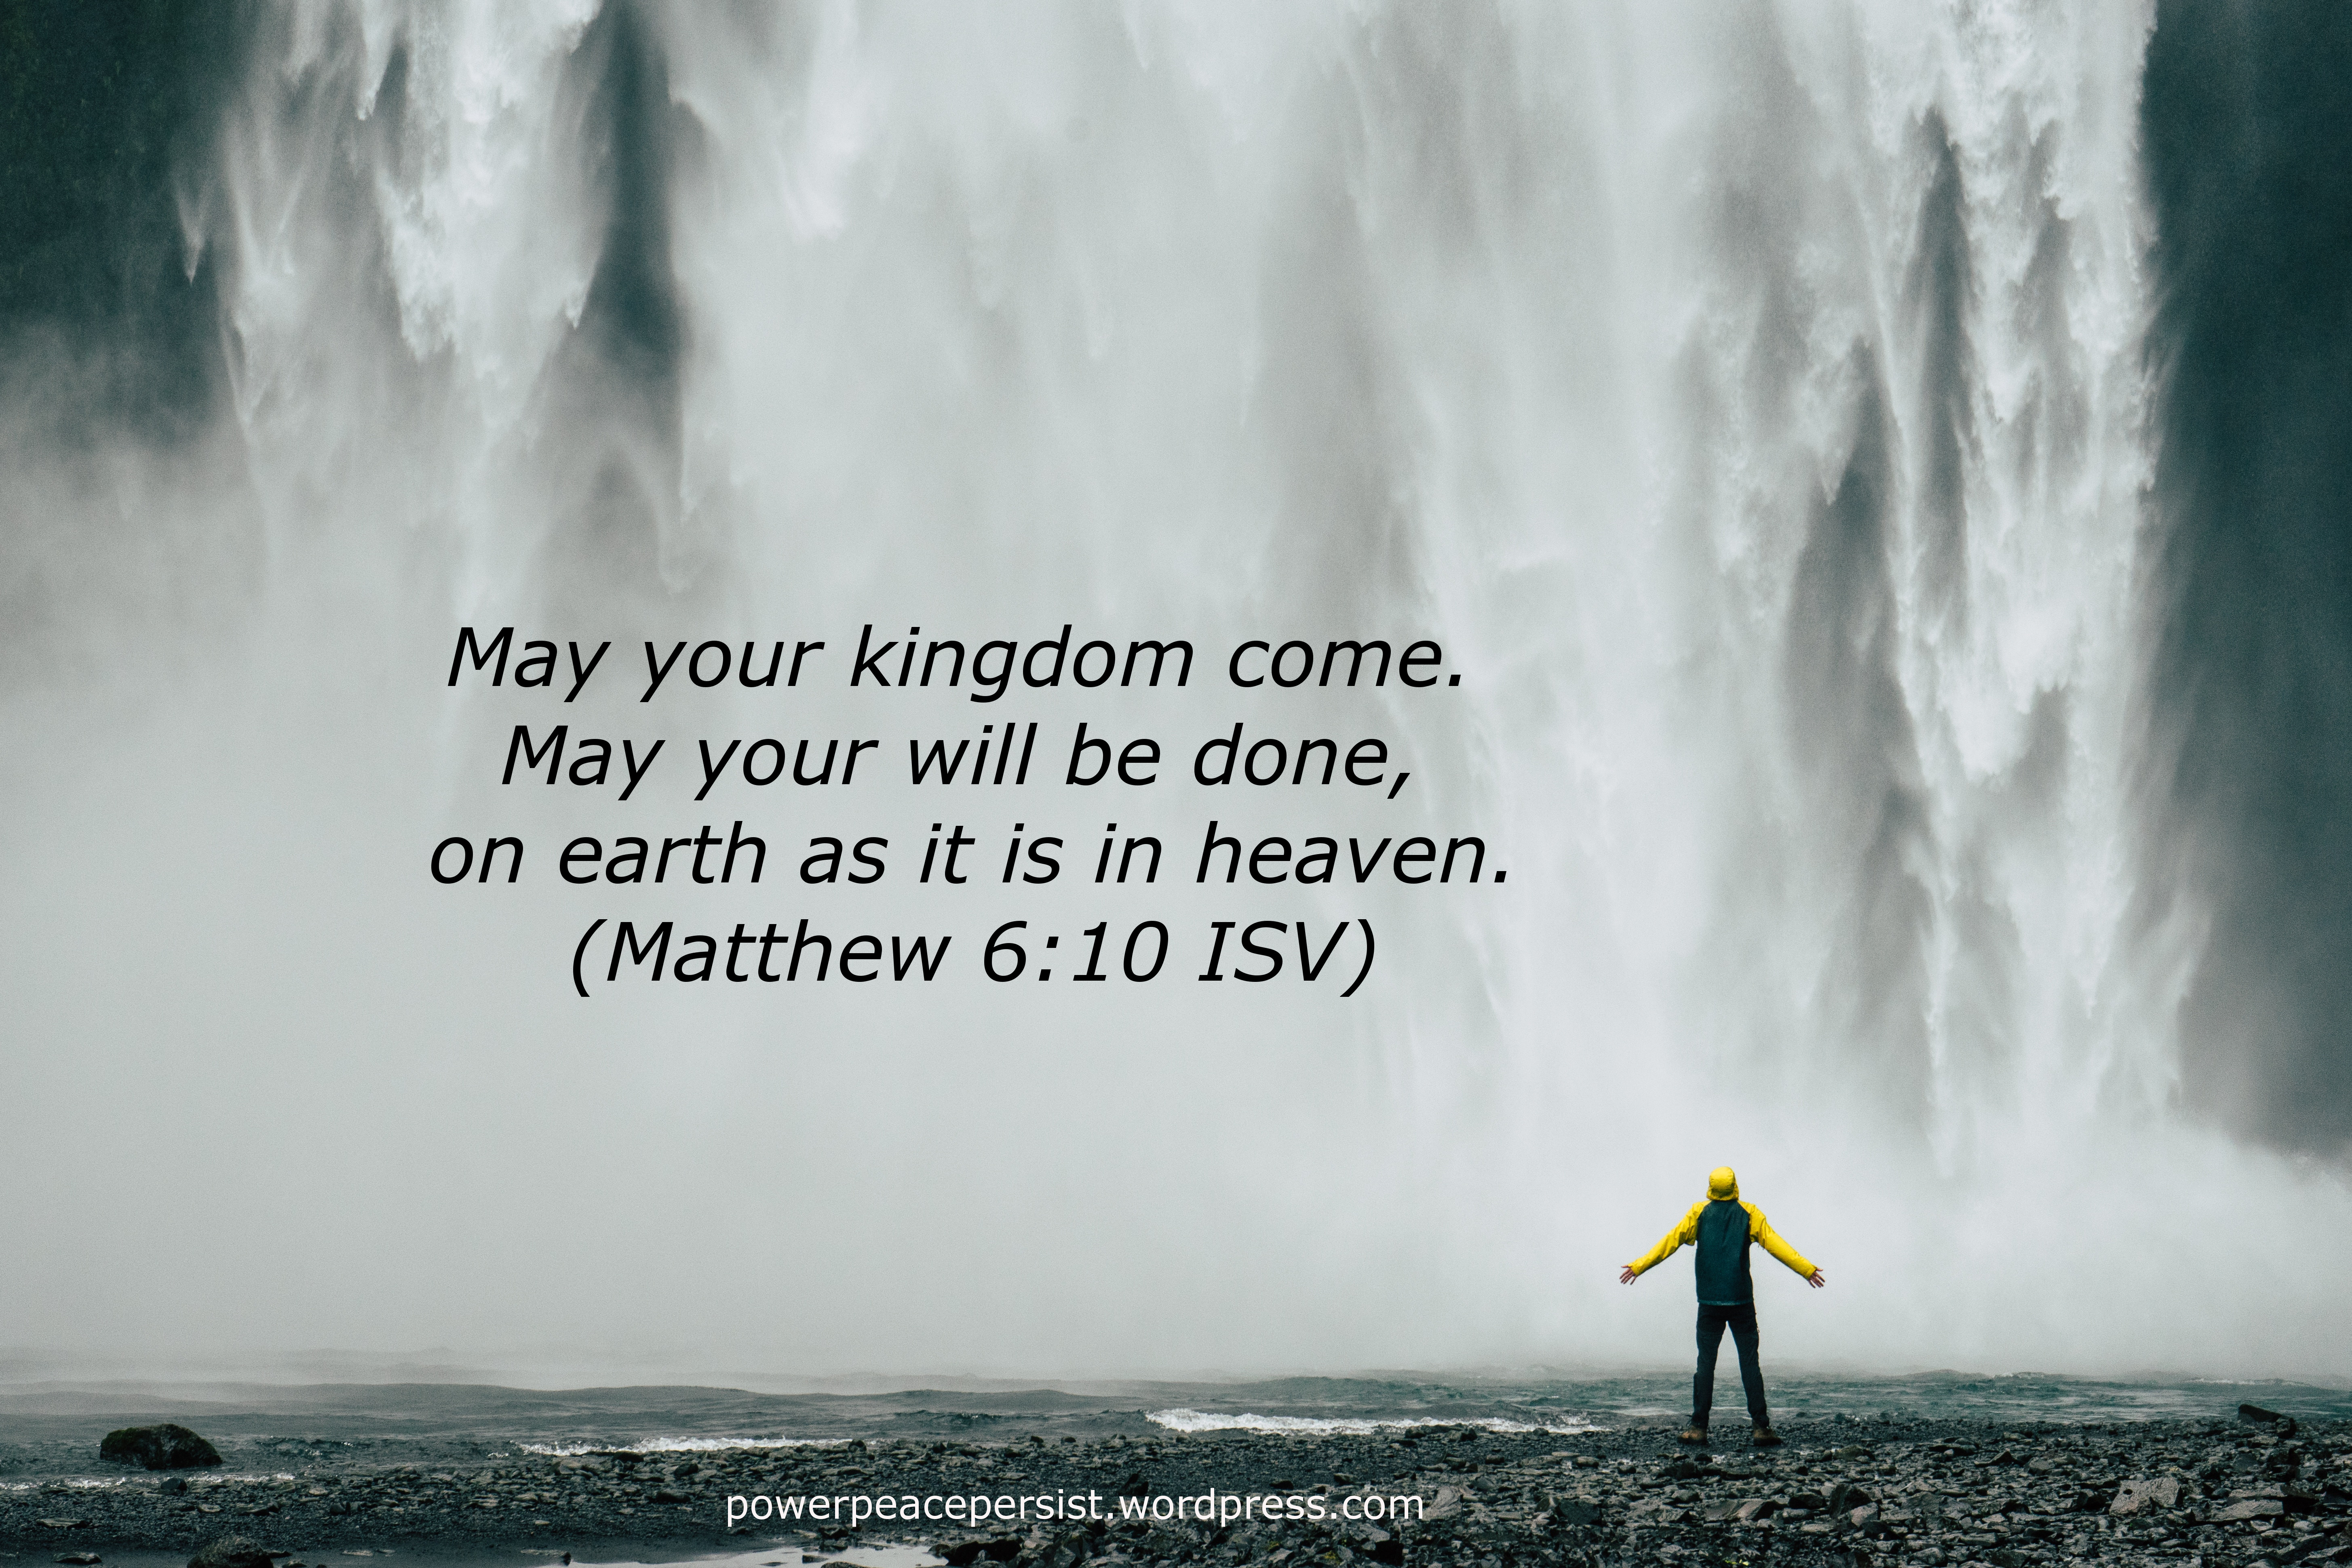 may your kingdom come may your will be done on earth as it is in heaven